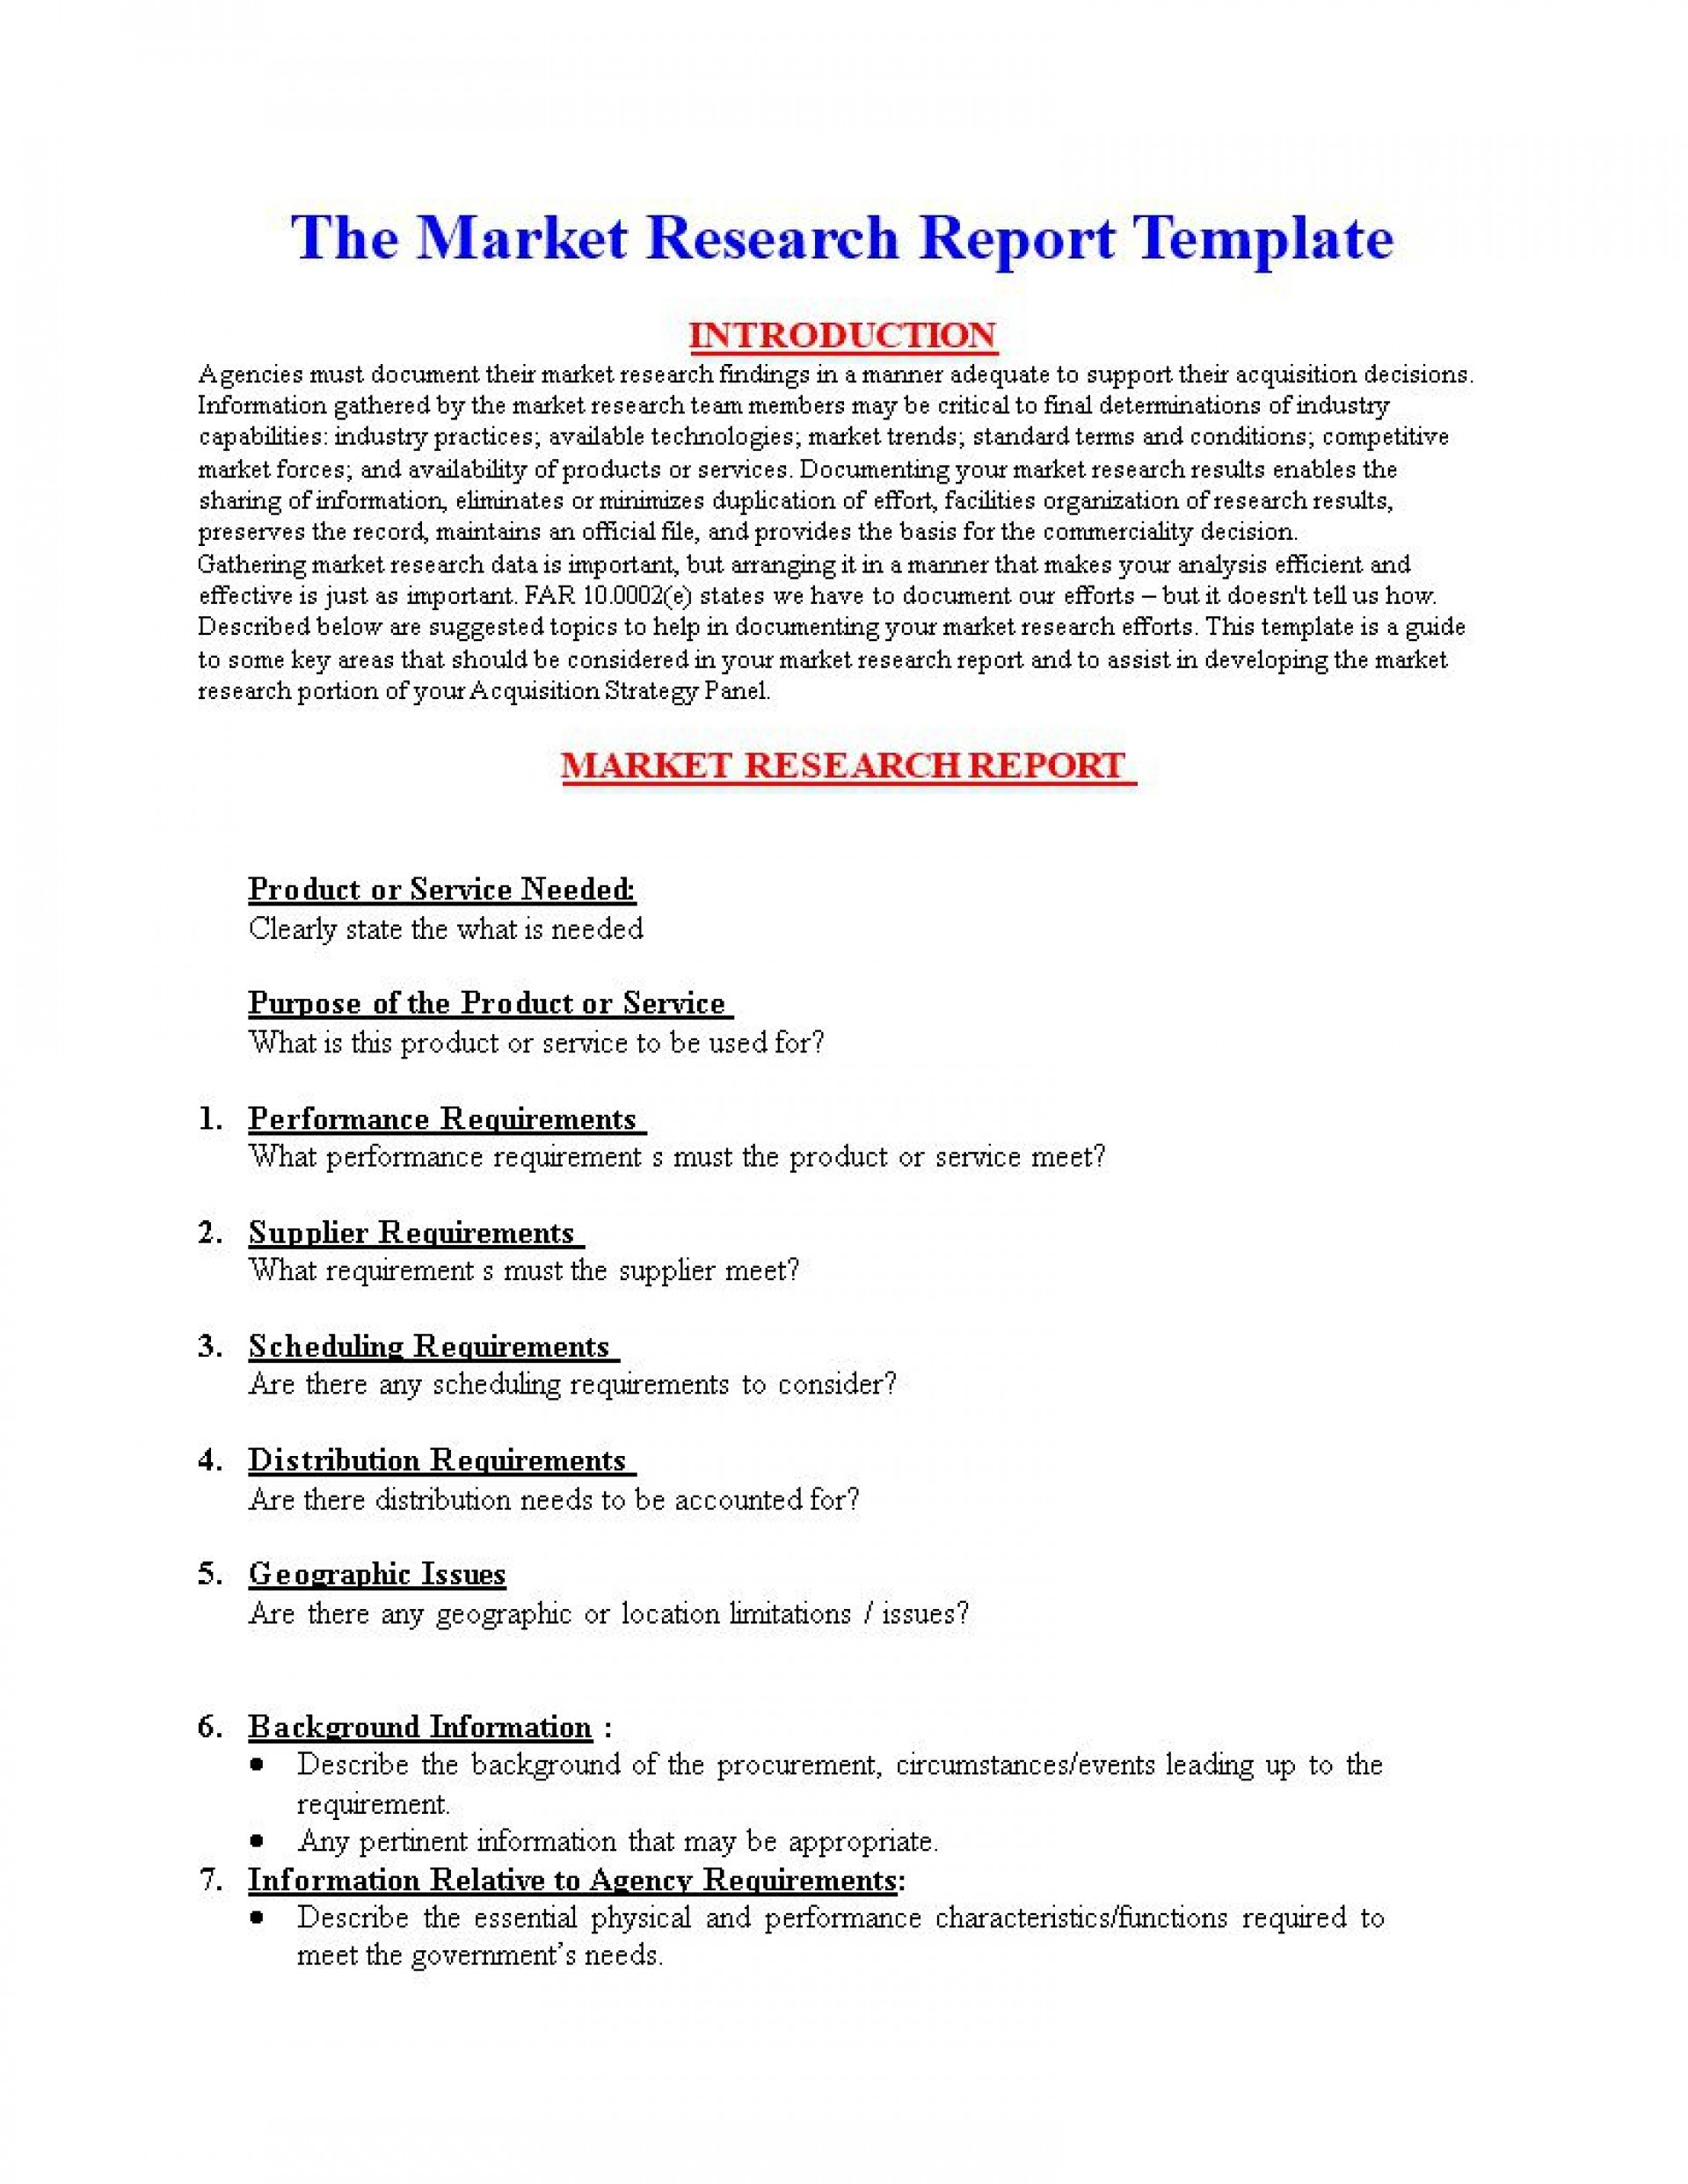 004 Sensational Market Research Report Template Inspiration  Excel Sample Free1920